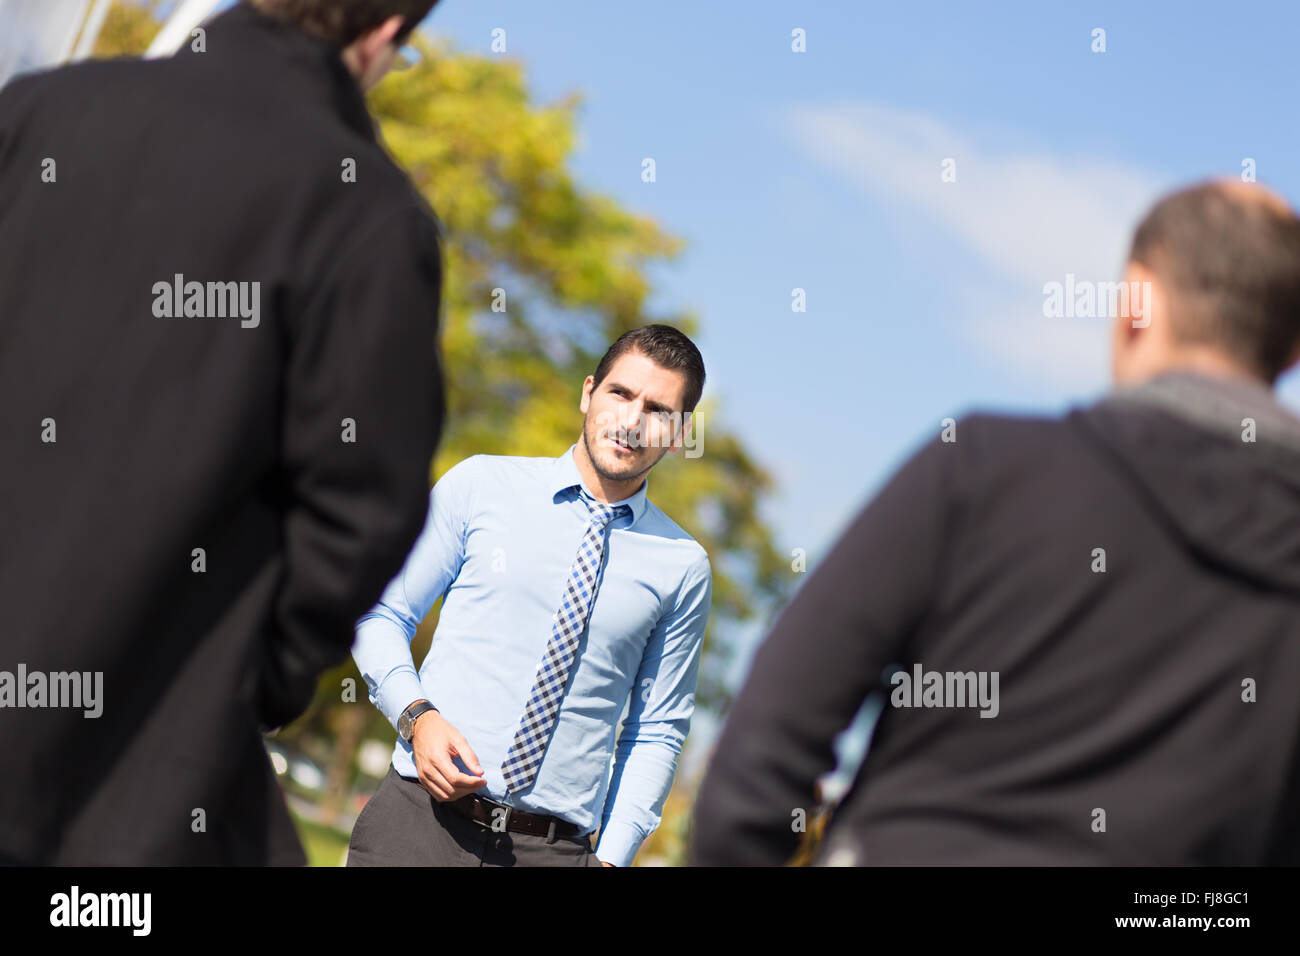 Businessman being approached and blackmailed by two racketeers. Stock Photo